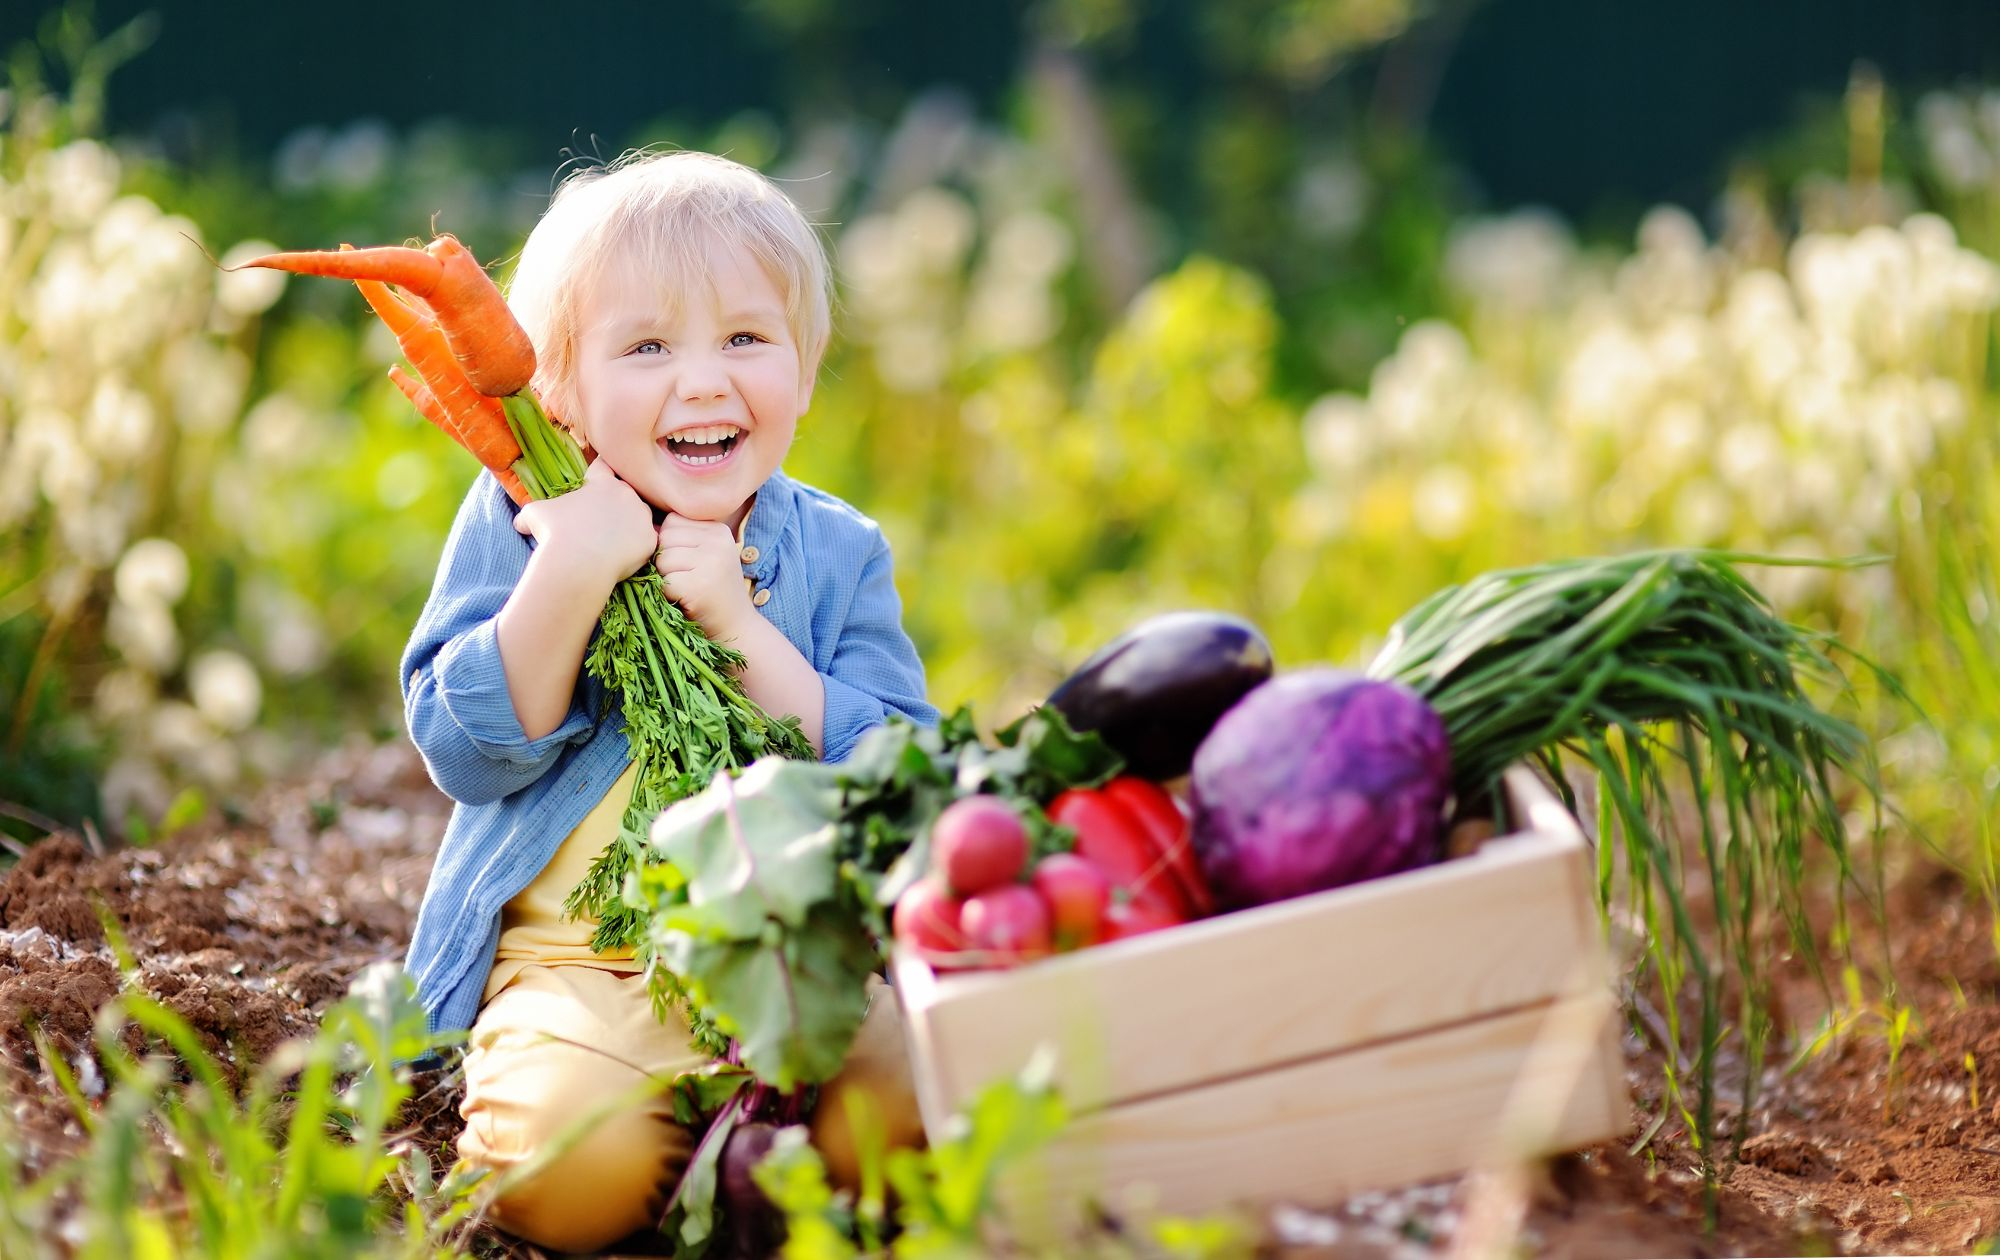 Cute-little-boy-holding-a-bunch-of-fresh-organic-carrots-in-domestic-garden